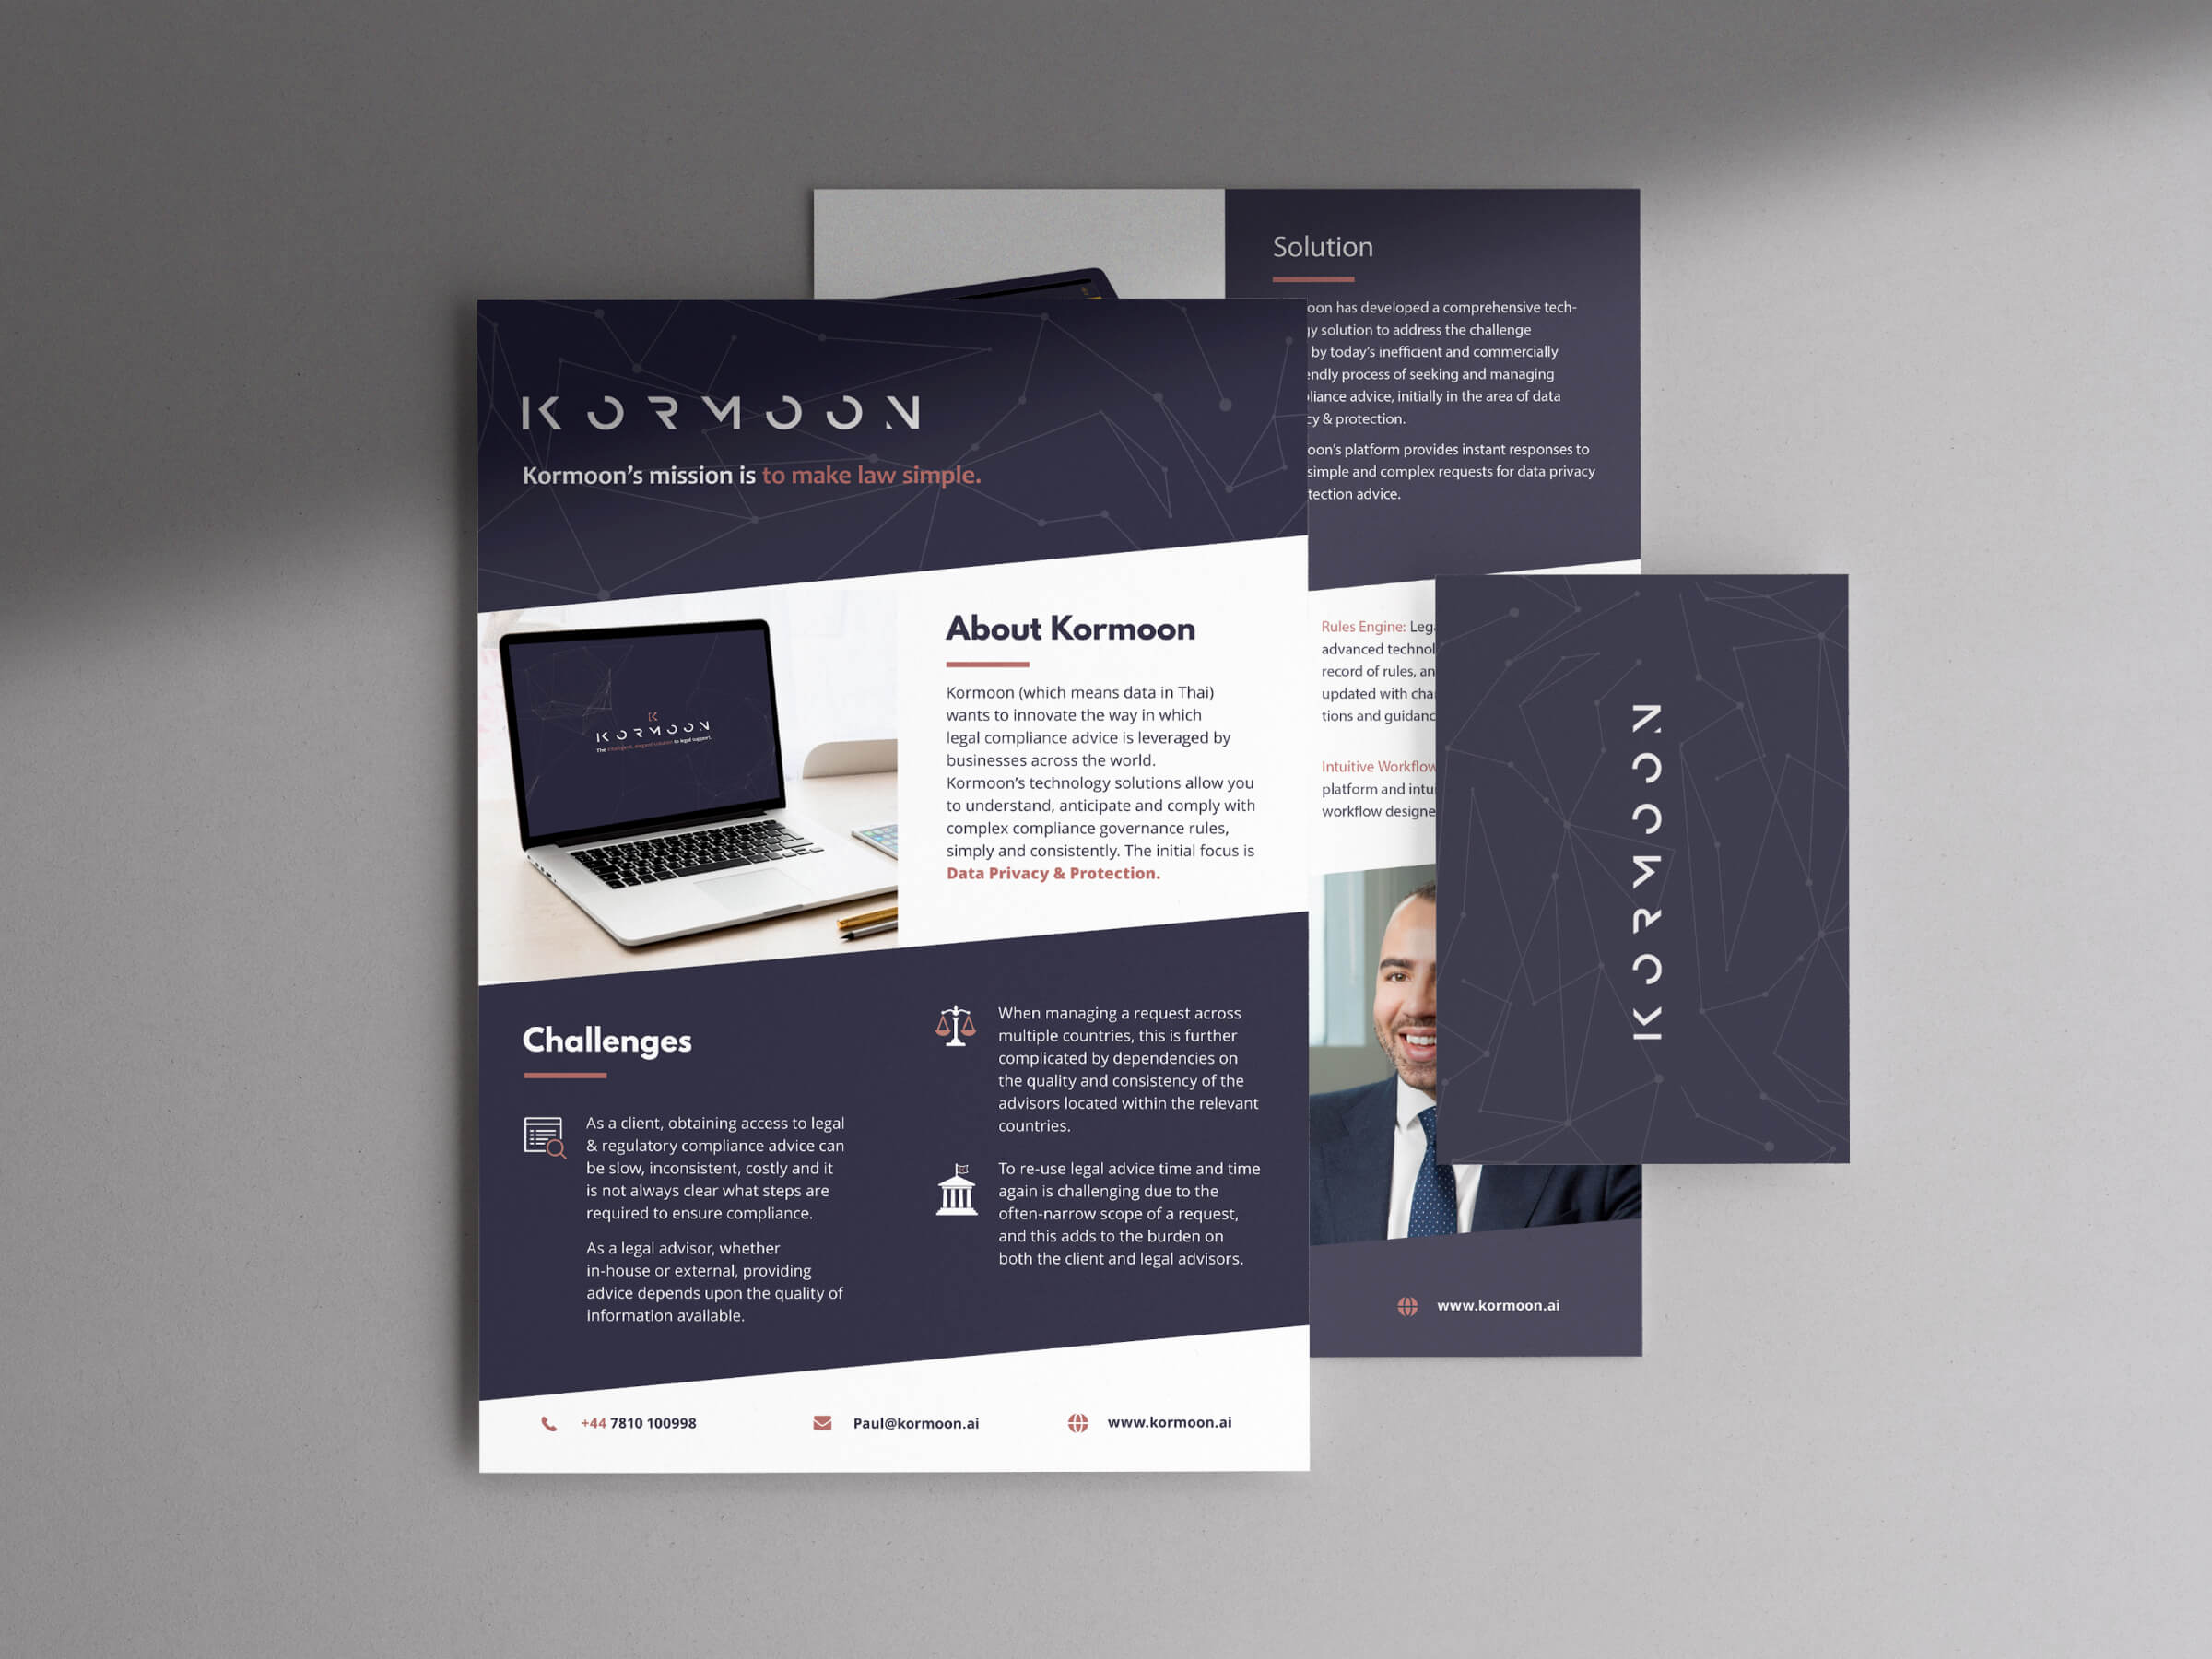 Kormoon_flyer-1